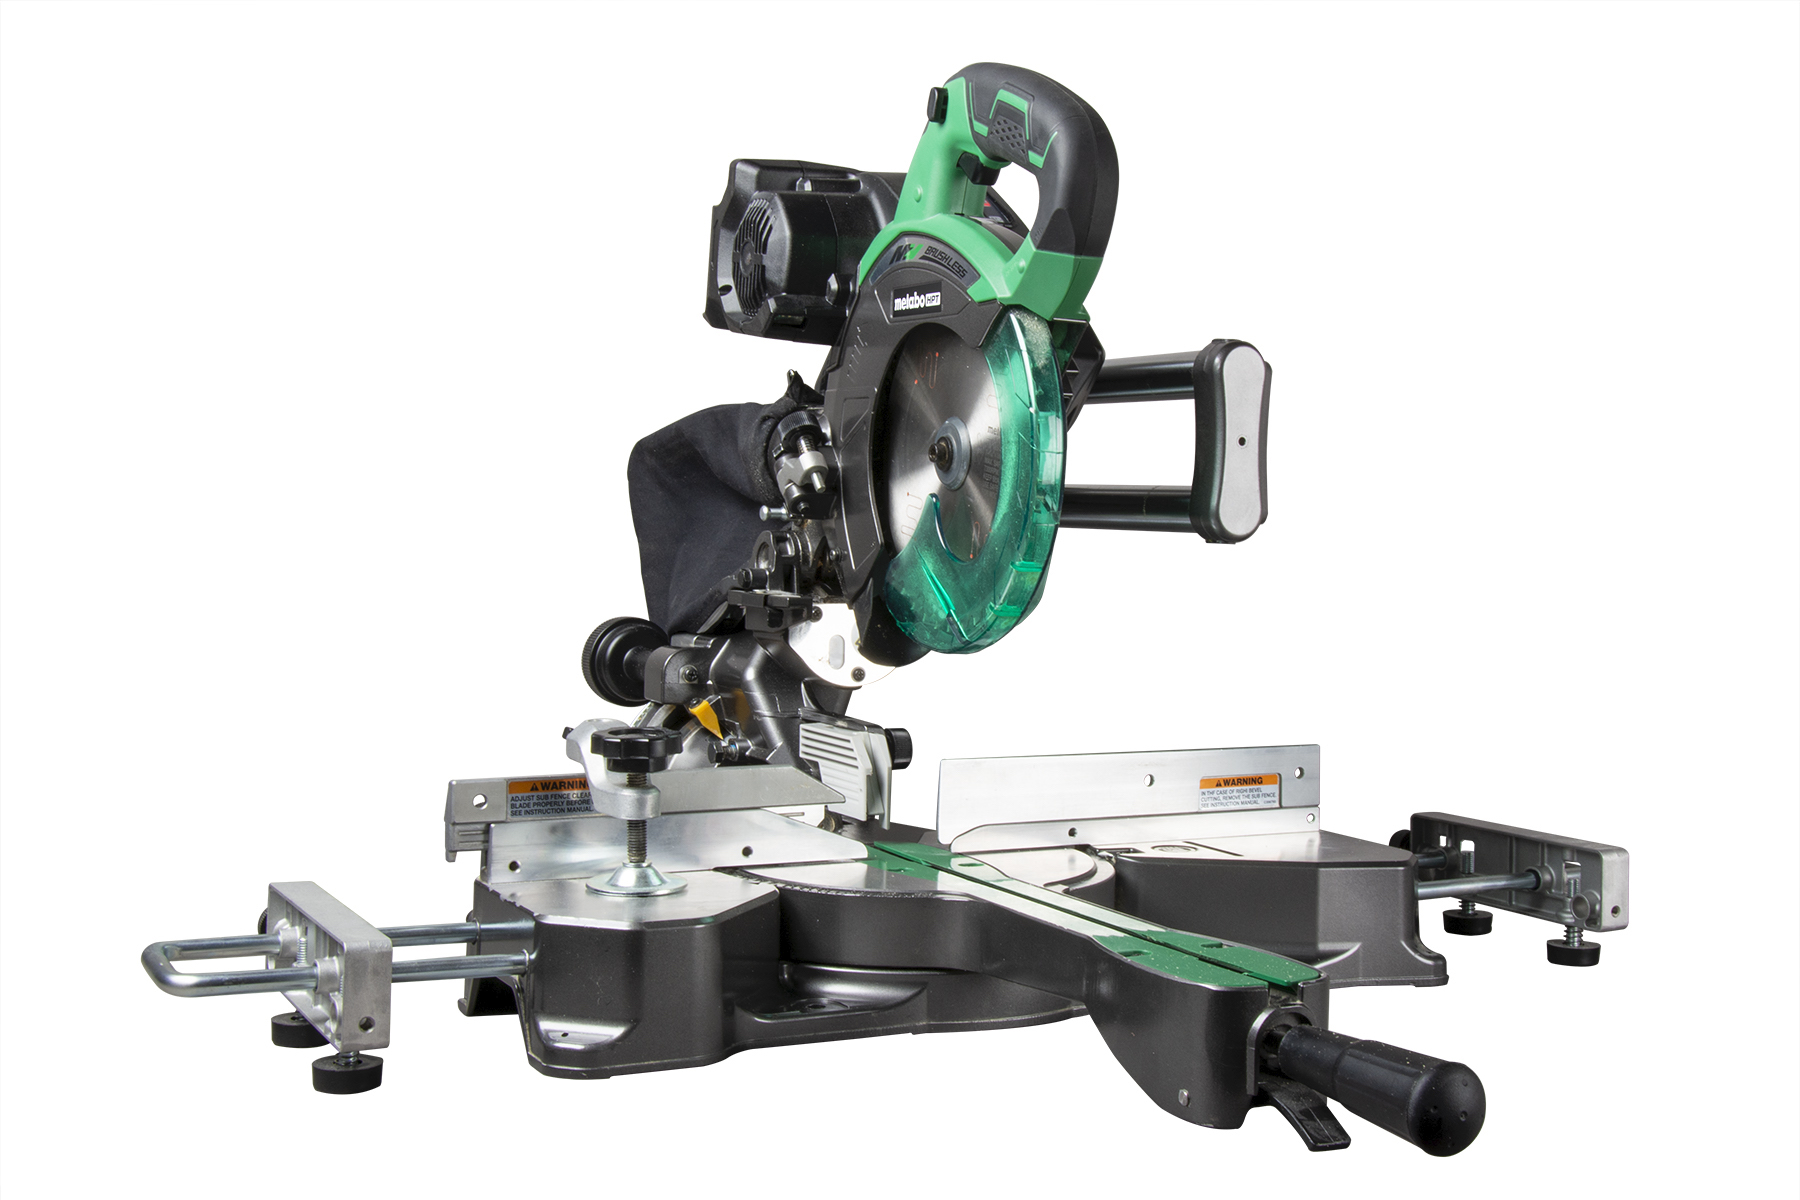 """The Metabo HPT 7-¼"""" sliding compound miter saw can be run cordless or corded and has a cut capacity of 2-9/32"""" x 12-13/64"""", making it capable of cross-cutting 2x12s with ease."""